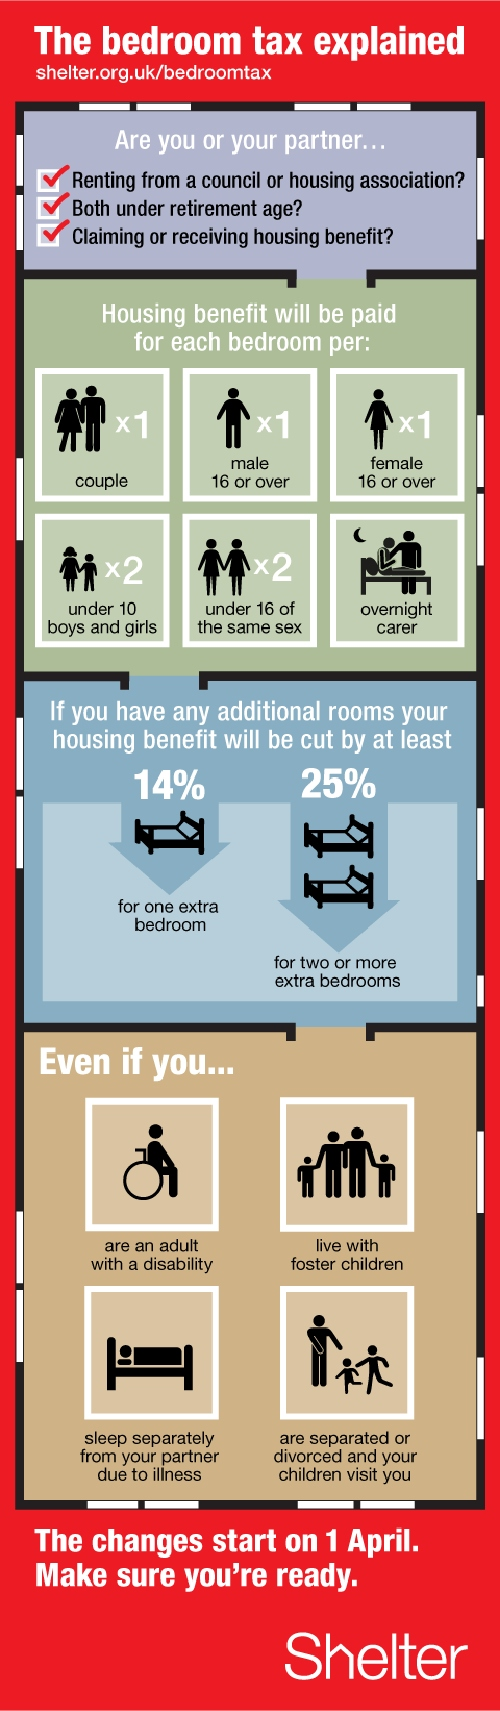 bedroom_tax_explained